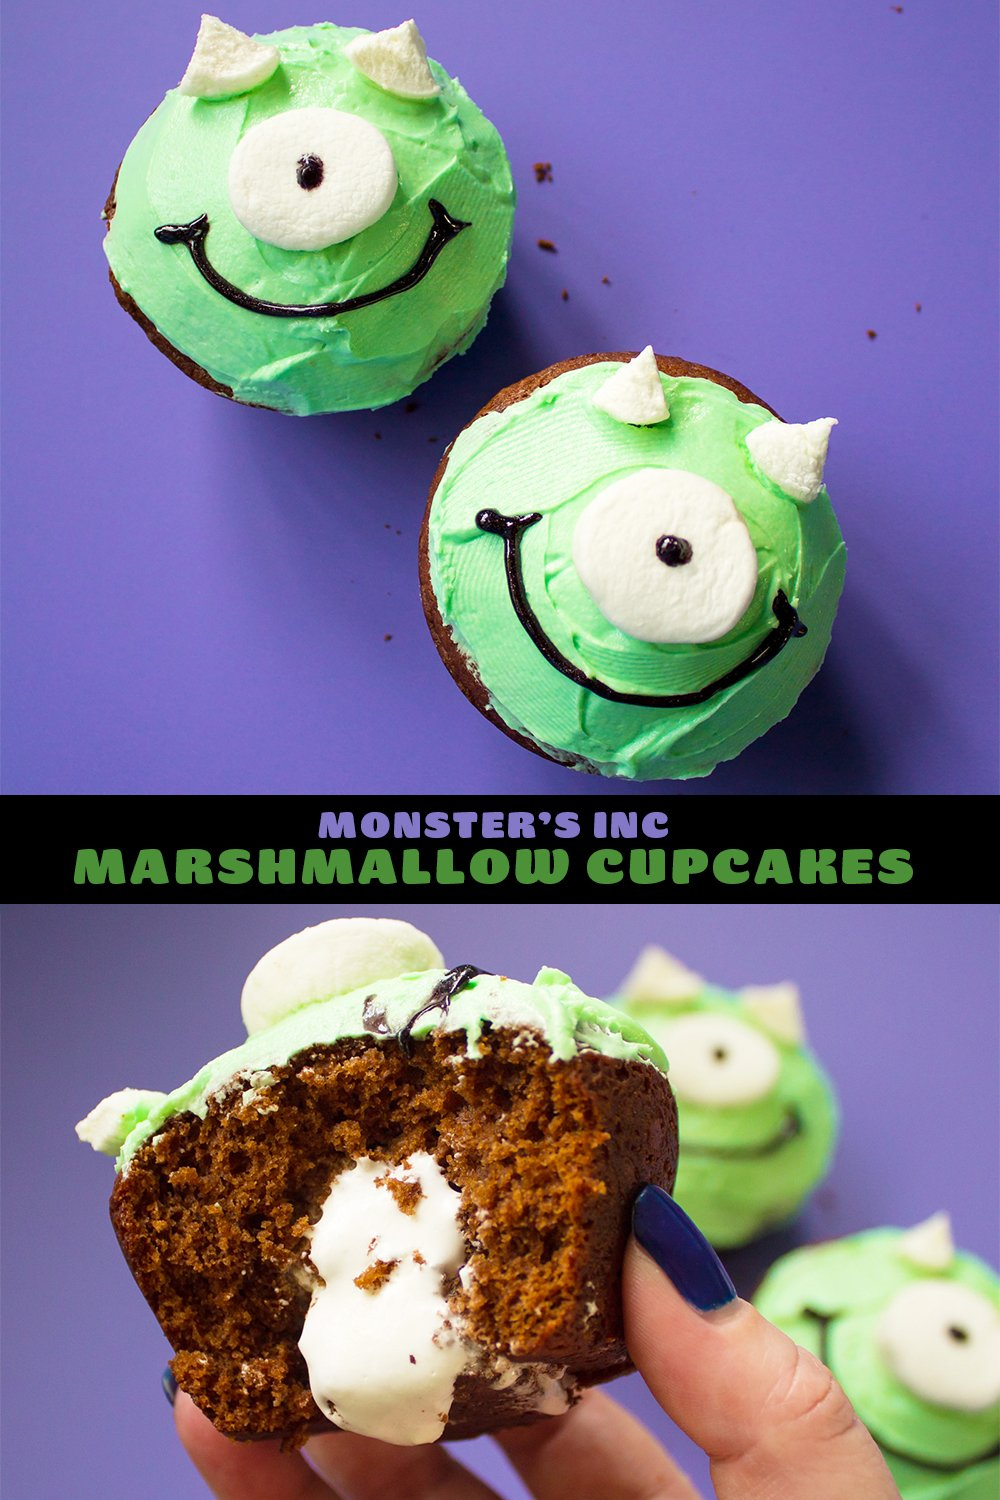 Monster's Inc Mike Wazowski chocolate marshmallow cupcakes